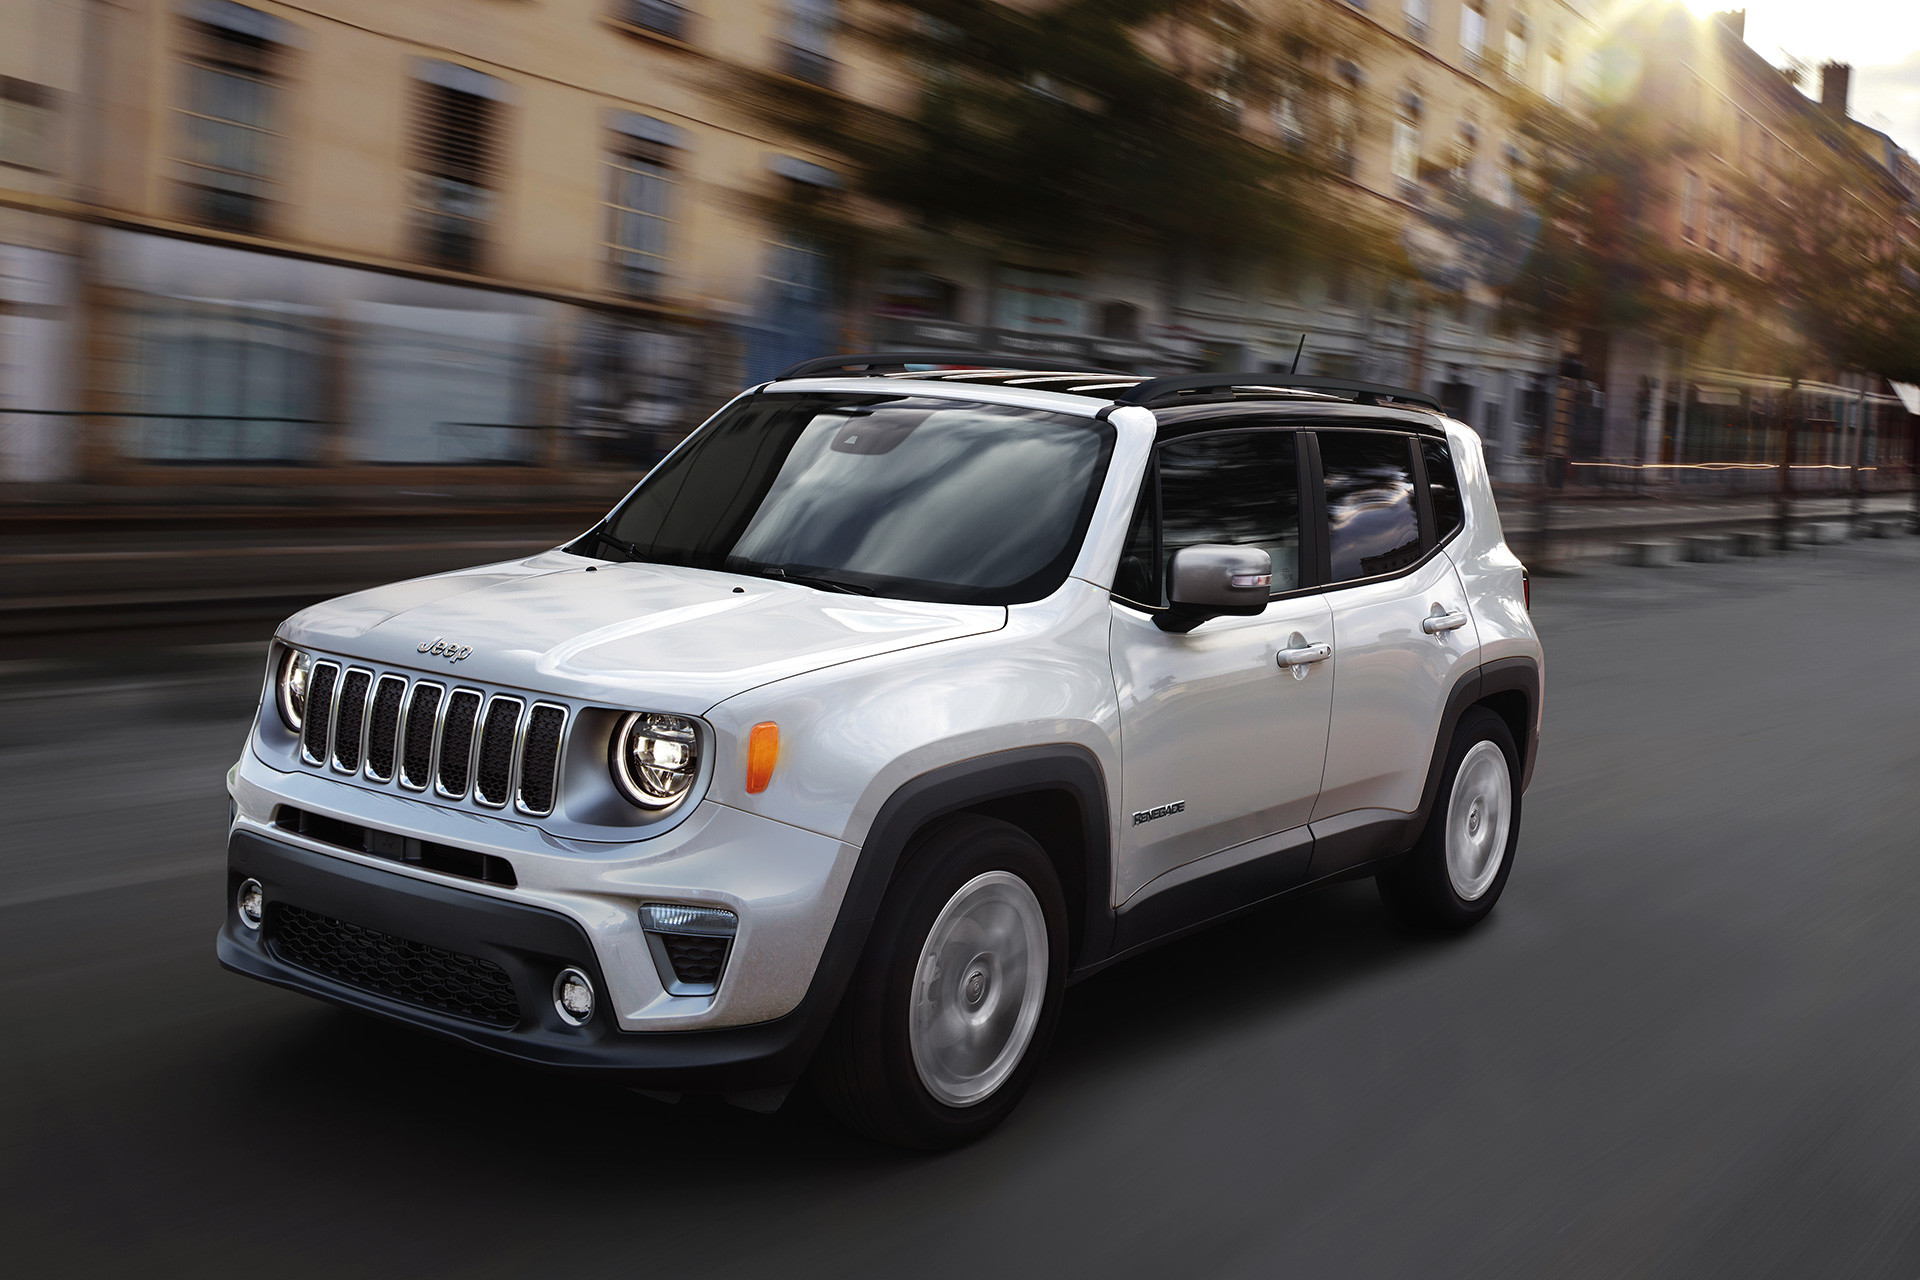 2019 Jeep Renegade exterior white parked